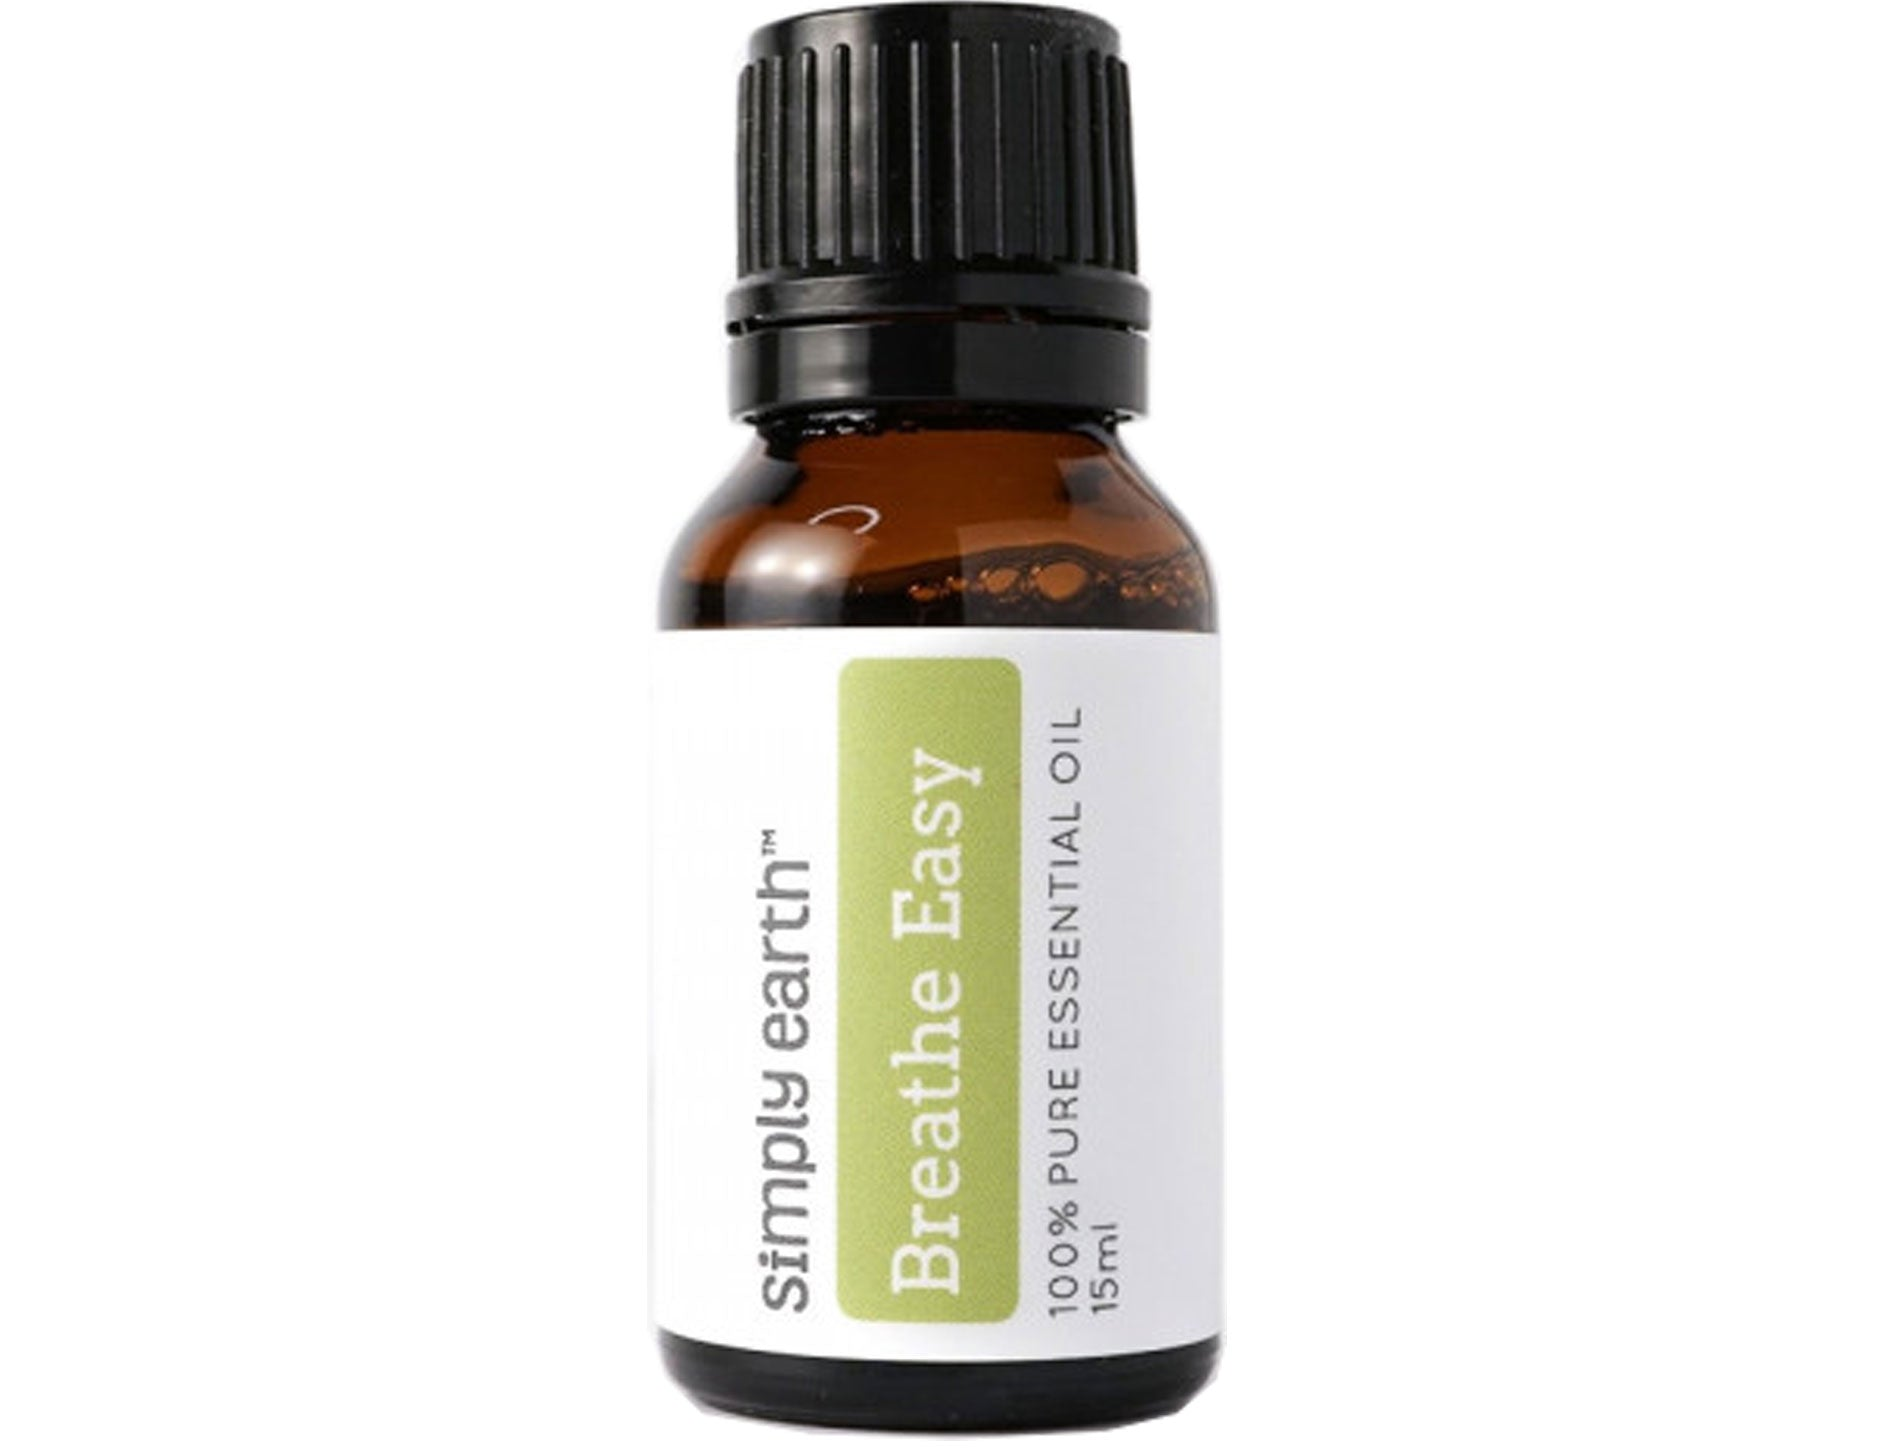 Simply Earth - Breathe Easy Essential Oil Blend - Good Soul Shop